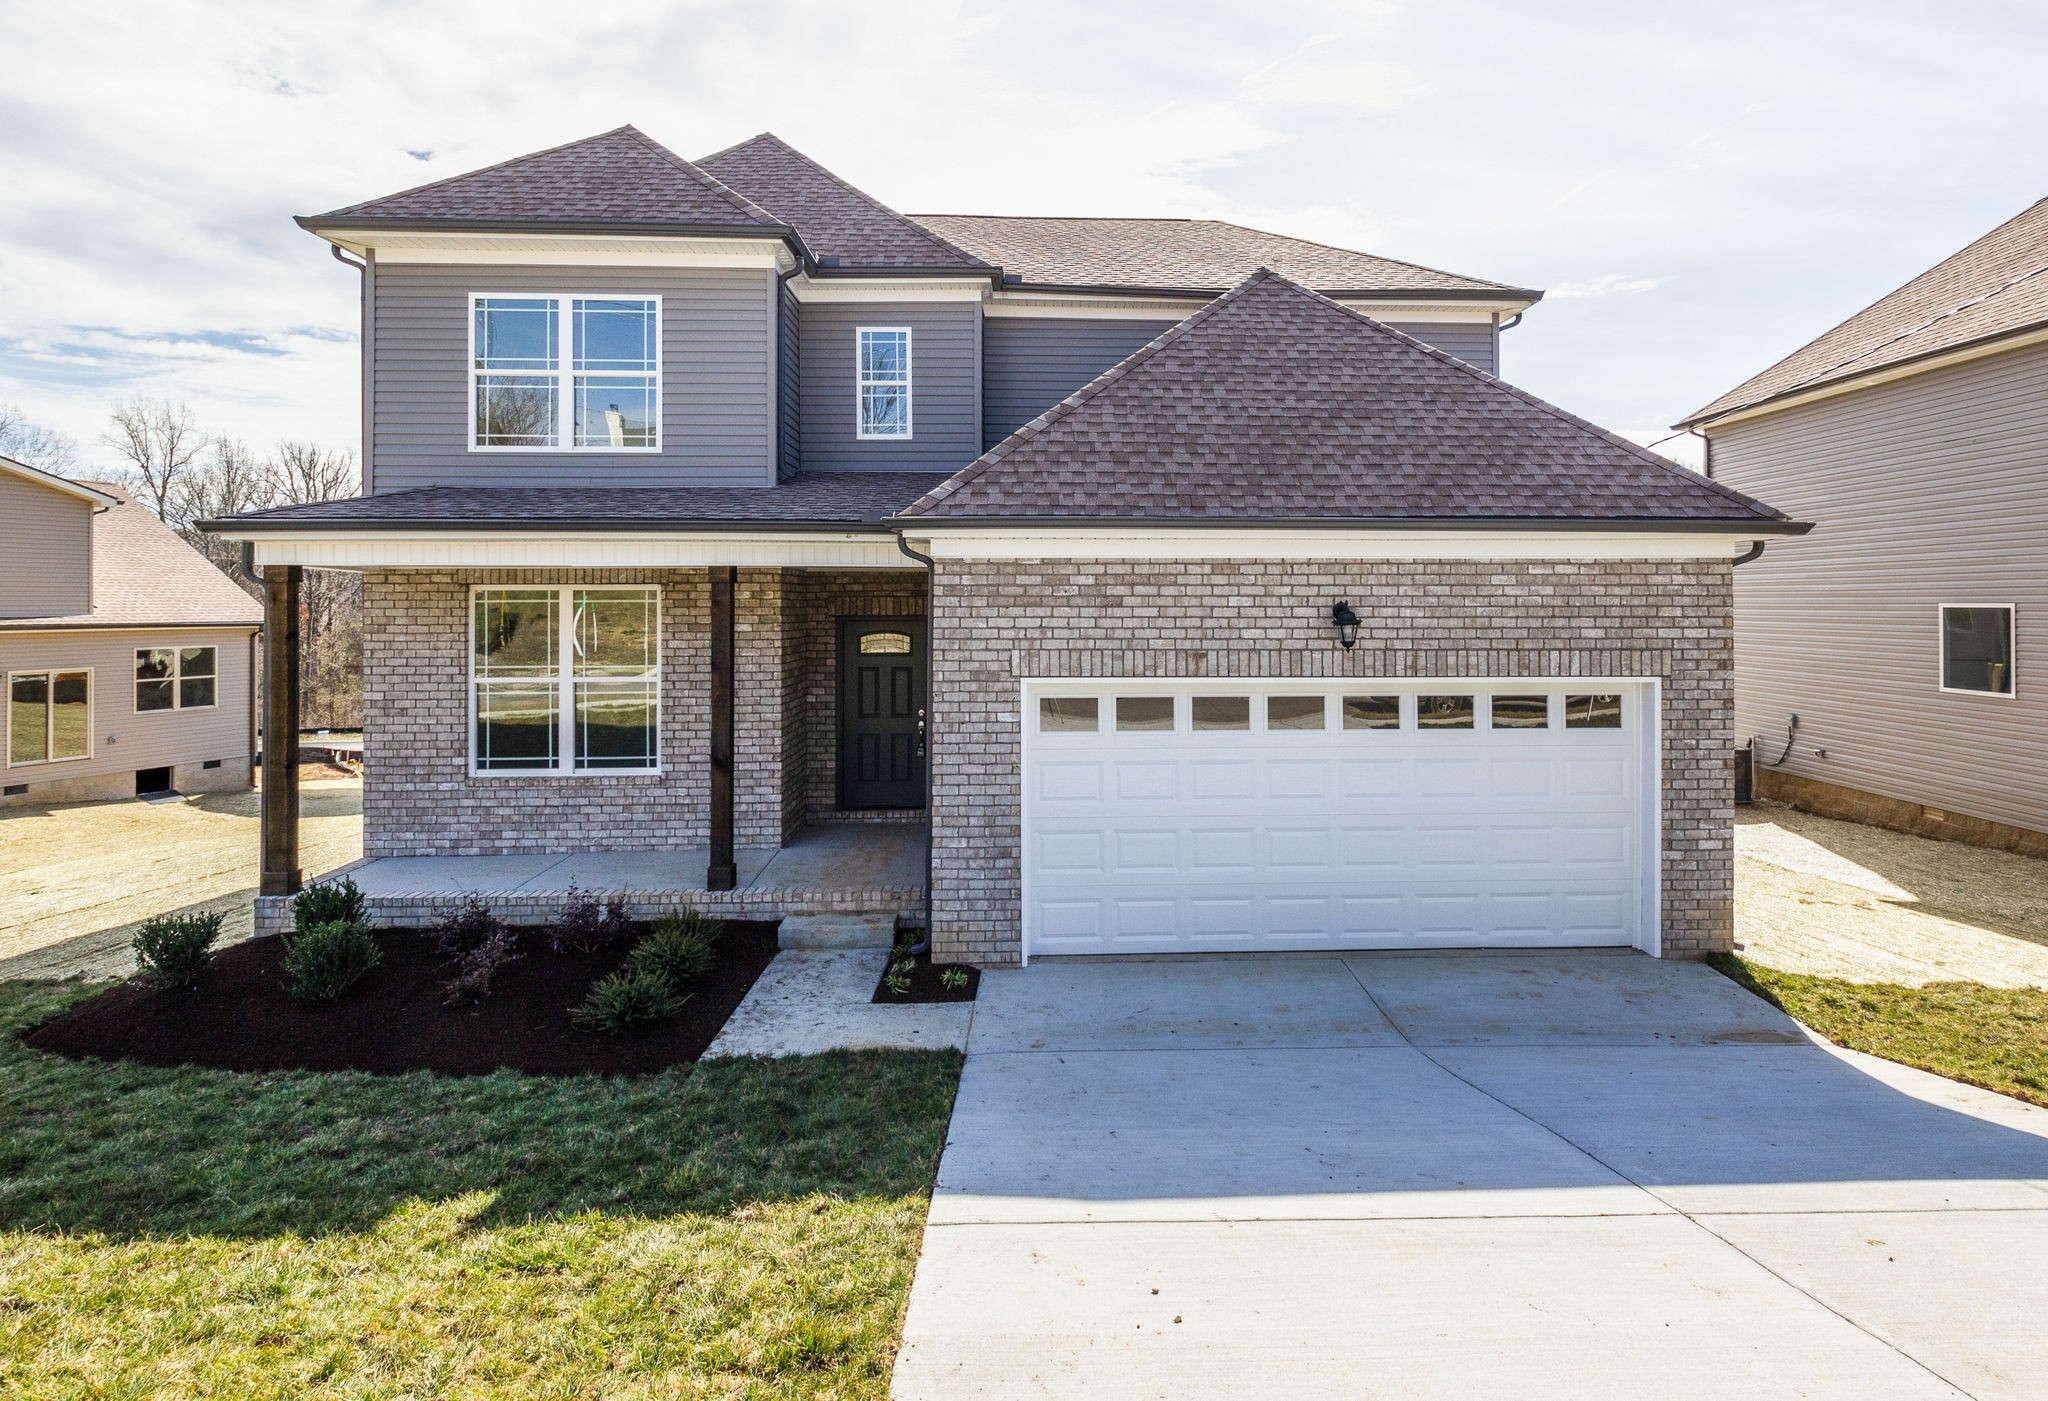 916 Mulberry Hill Place #163, Antioch, TN 37013 - Antioch, TN real estate listing